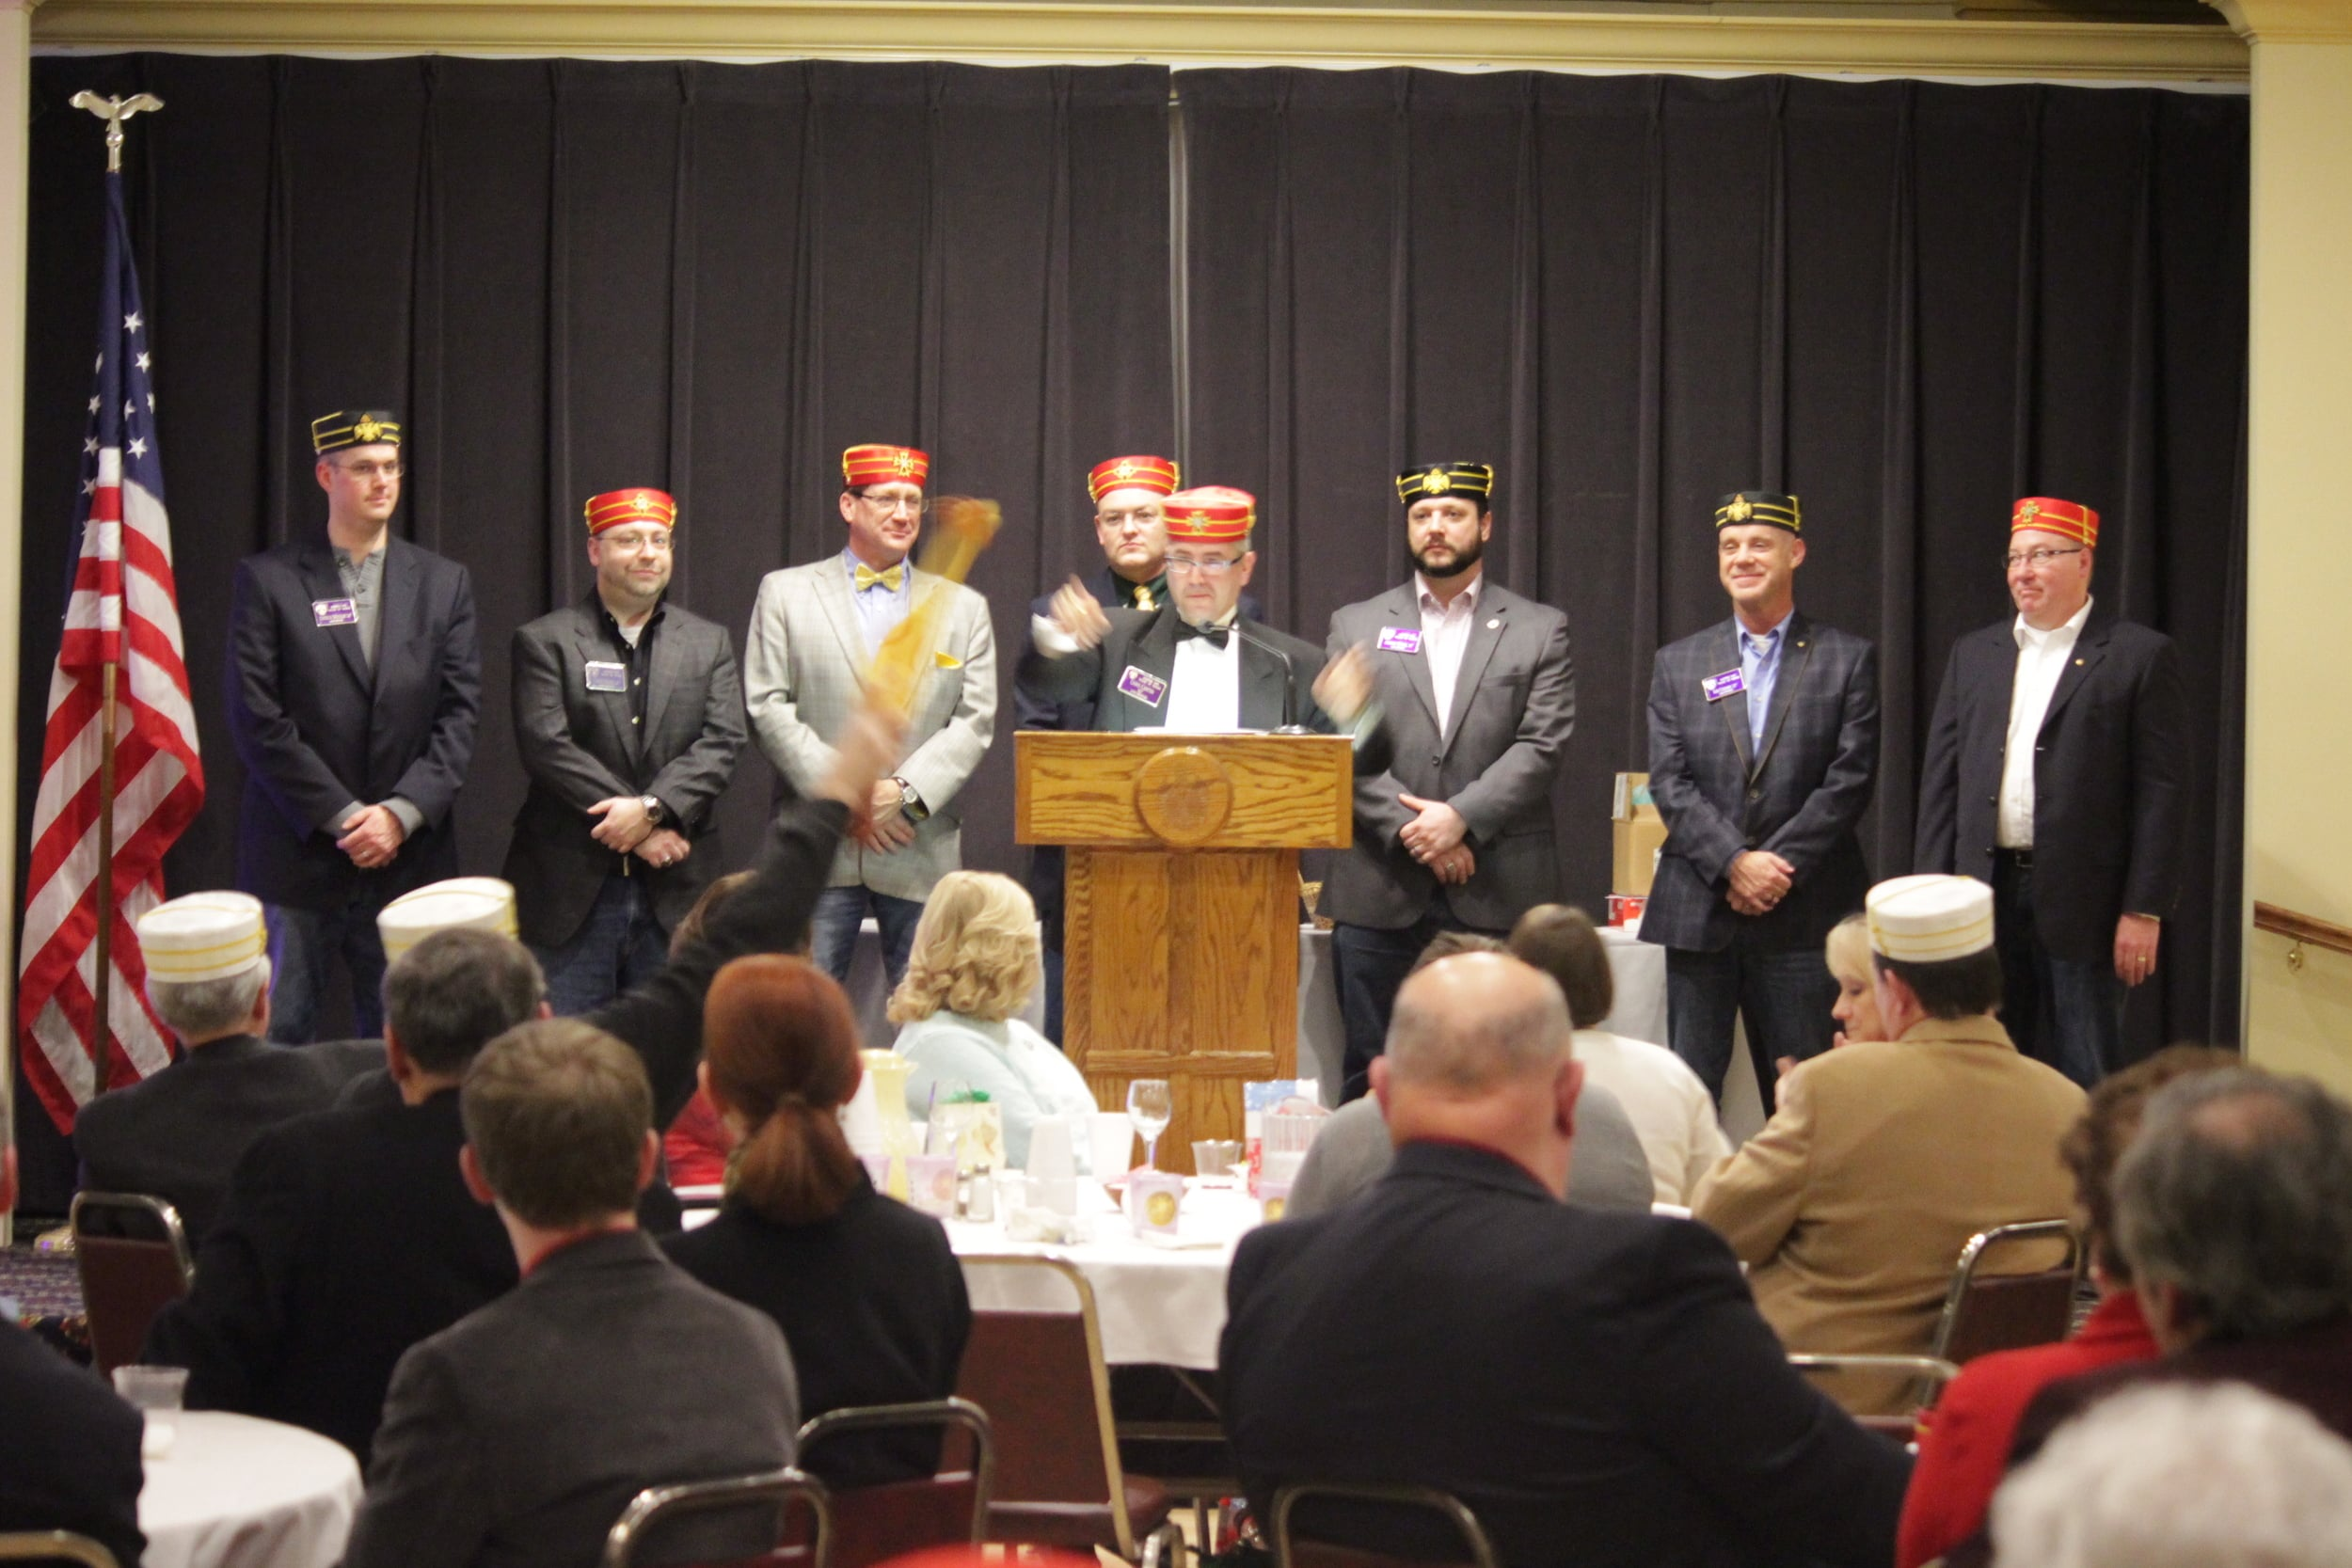 The 2015 Lodge of Perfection officers, our emcees for the evening.